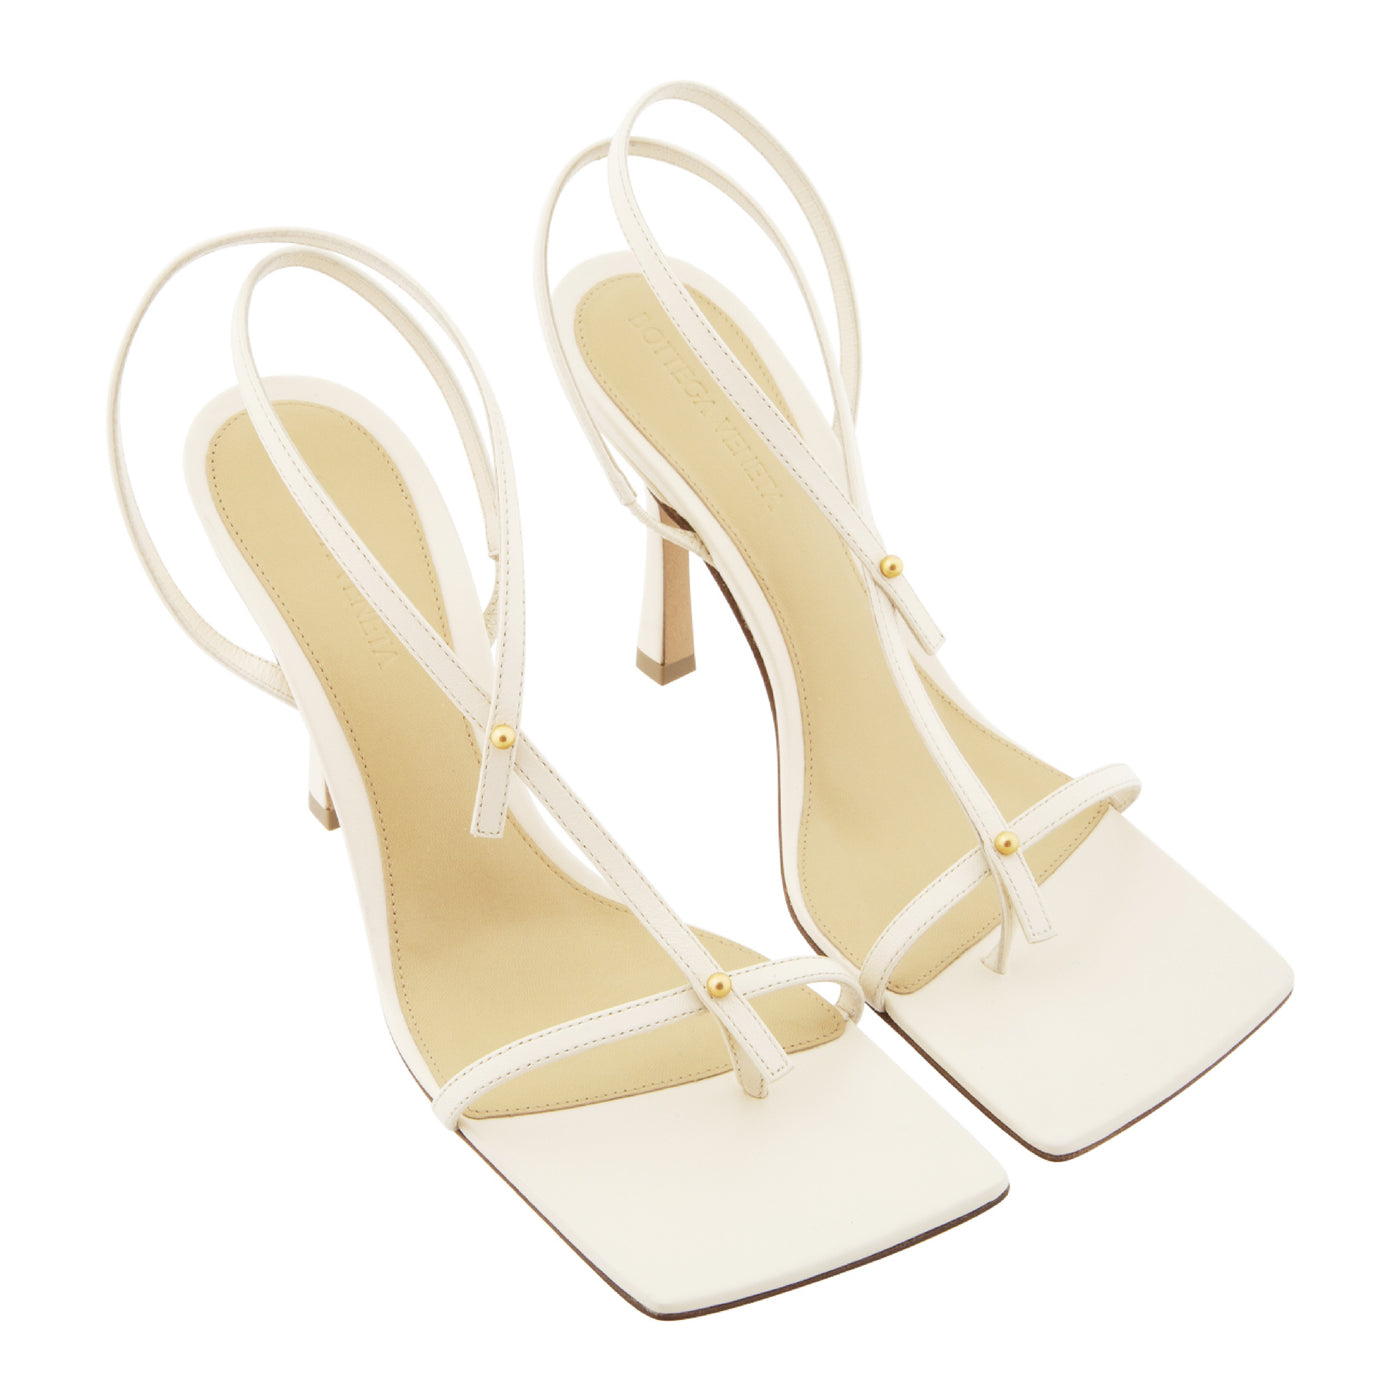 Load image into Gallery viewer, BOTTEGA VENETA STRAPPY SANDALS WHITE